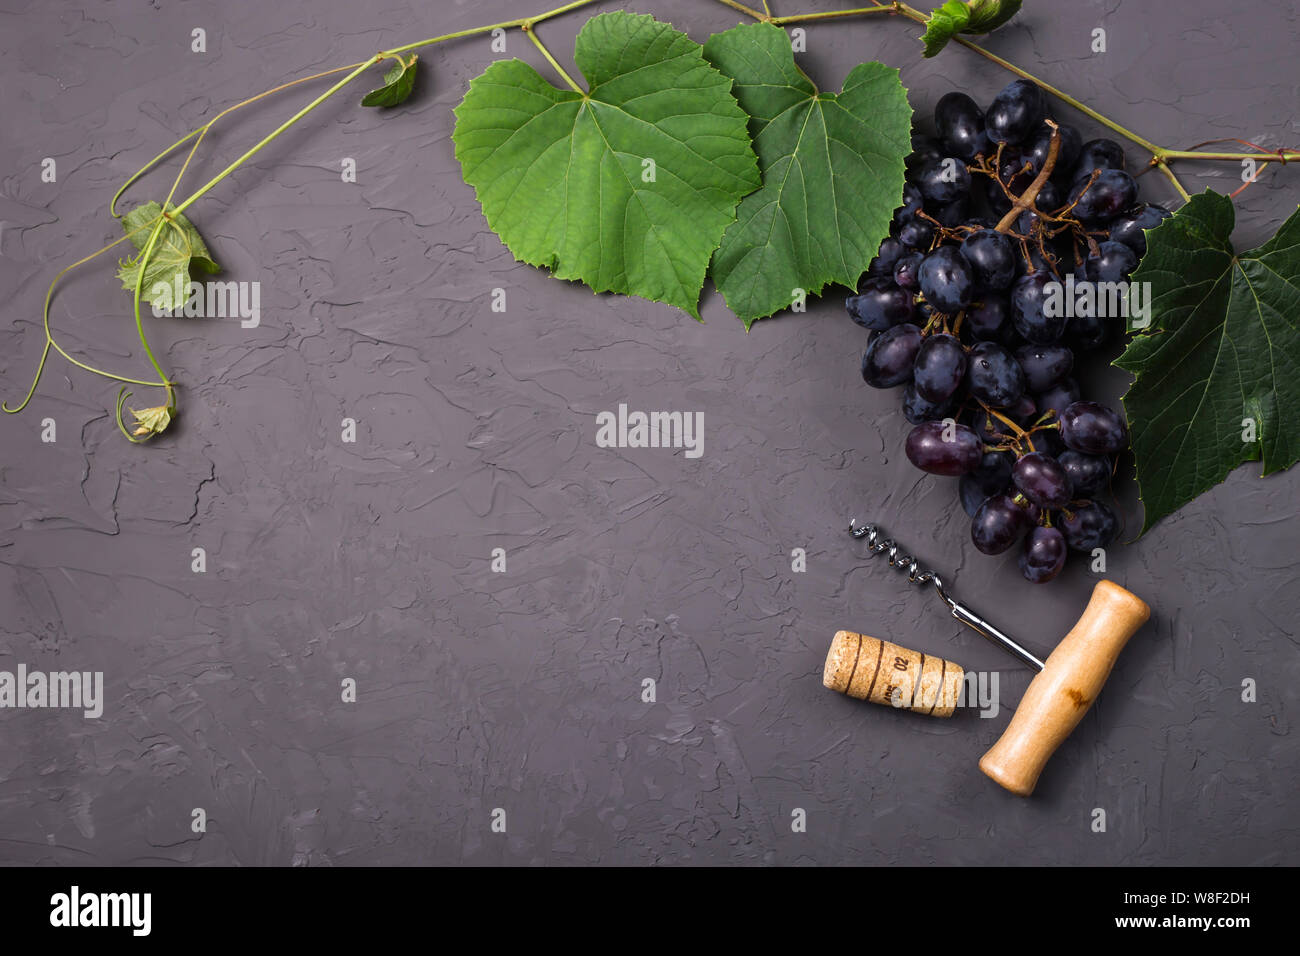 A bottle of red wine next to ripe grapes with leaves on a gray background. Top view, flat lay, copy space Stock Photo